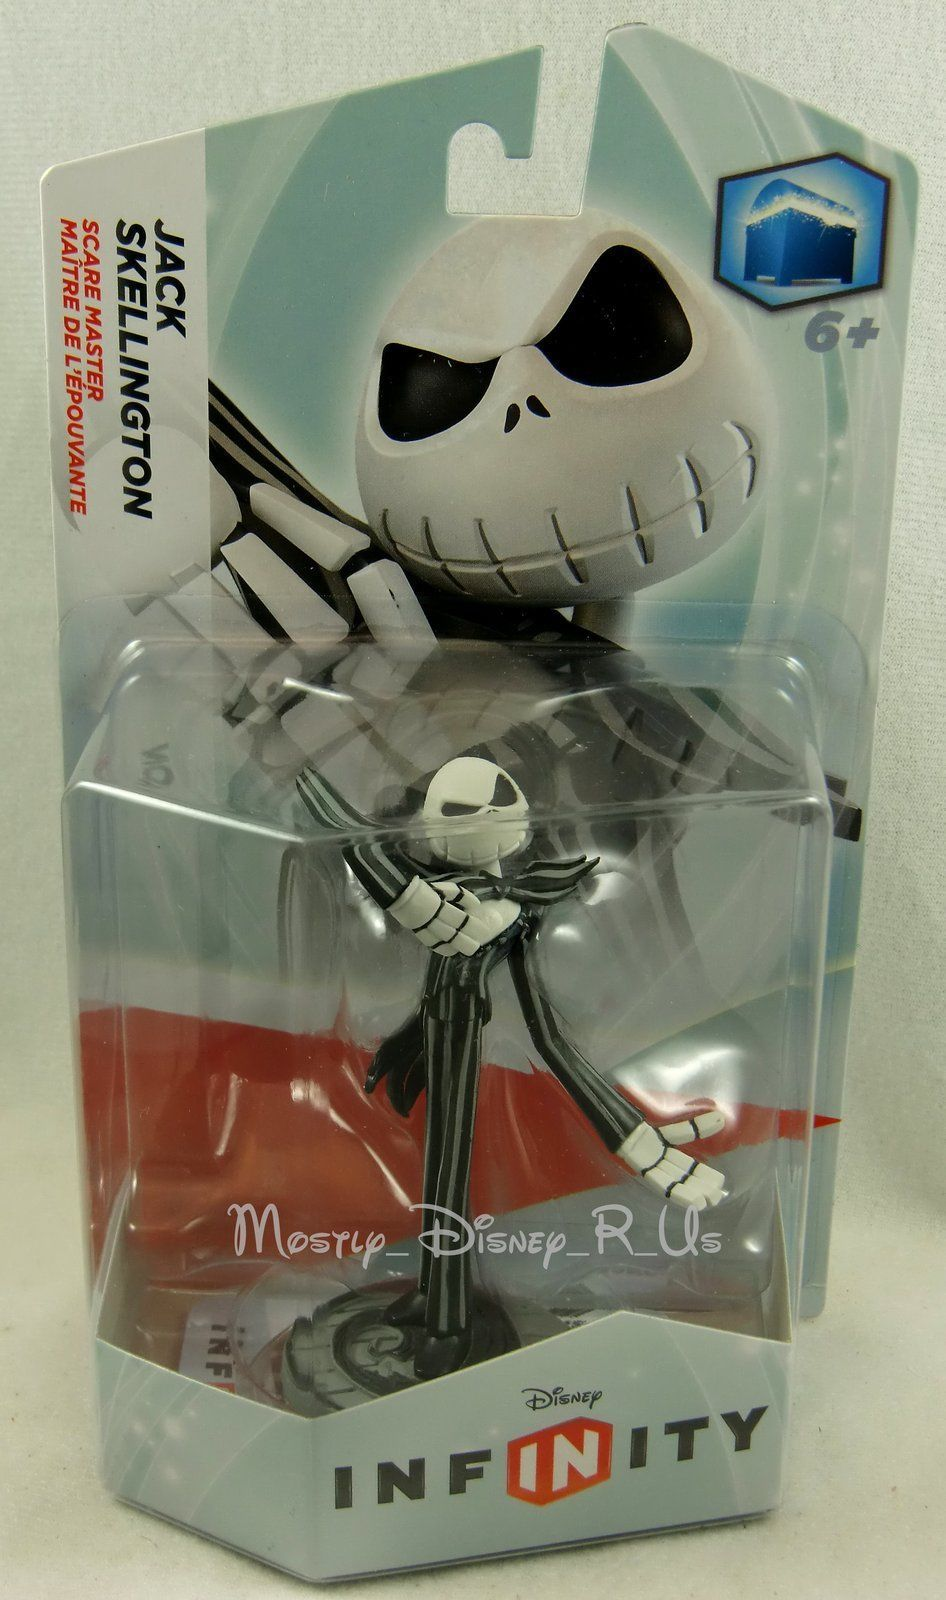 Disney Infinity Jack Skellington Limited Edition Game Figure Toy Wii Xbox360 New Nightmare Before Christmas Tree Disney Infinity Christmas Collectibles